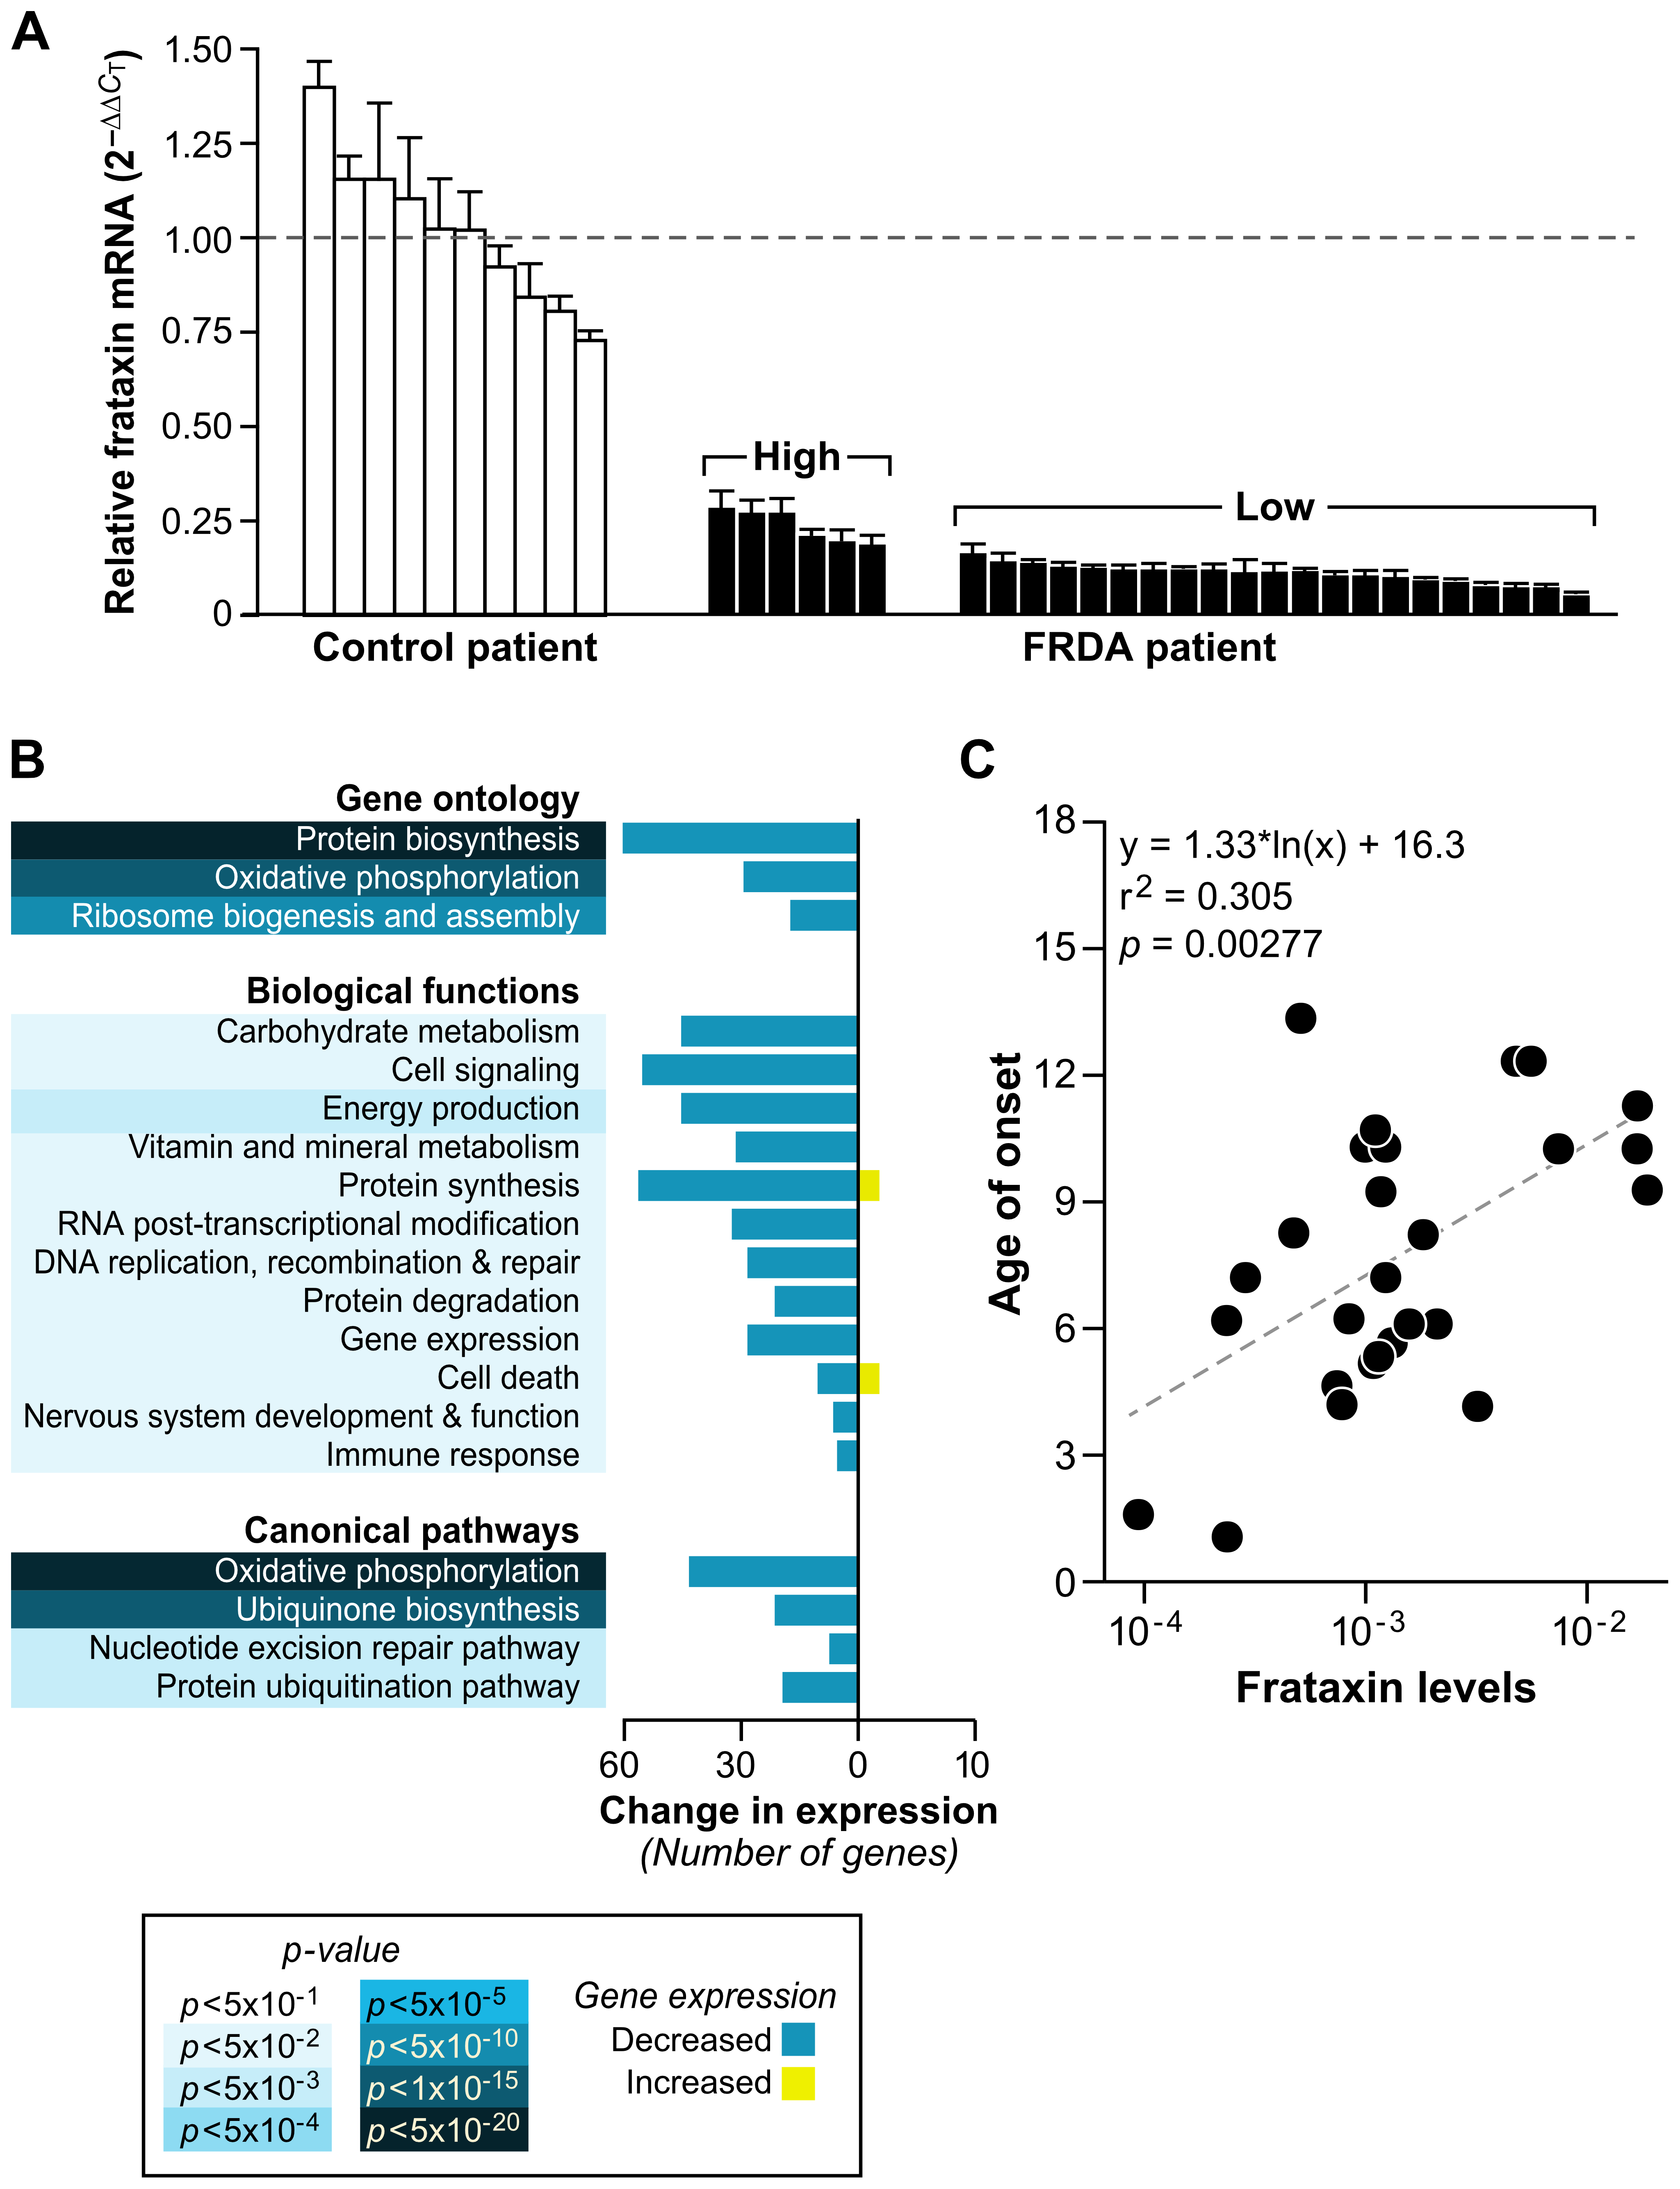 Patients with lower levels of frataxin correlate with age of onset of disease and have more compromised mitochondrial and protein biosynthetic function.